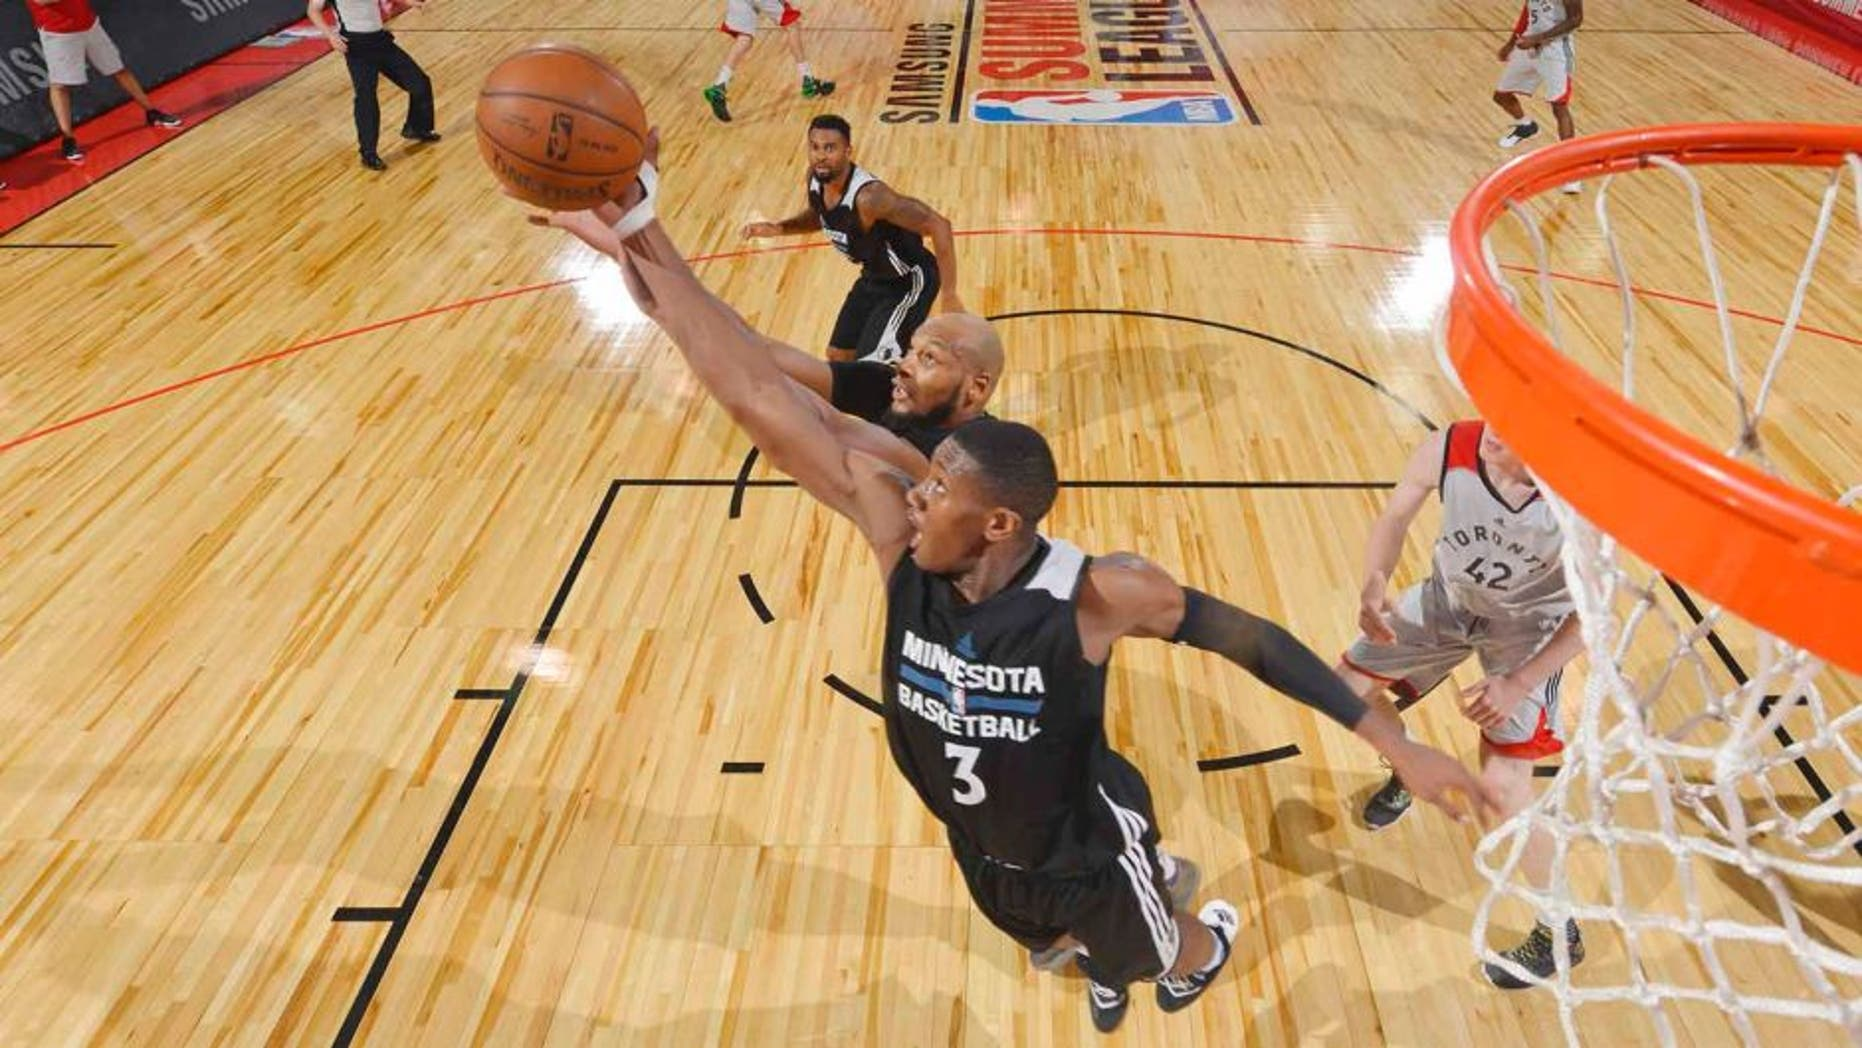 LAS VEGAS, NV - JULY 10: Kris Dunn #3 of the Minnesota Timberwolves jumps for the rebound against the Toronto Raptors during the 2016 Las Vegas Summer League on July 10, 2016 at Cox Pavillon in Las Vegas, Nevada. NOTE TO USER: User expressly acknowledges and agrees that, by downloading and or using this Photograph, user is consenting to the terms and conditions of the Getty Images License Agreement. Mandatory Copyright Notice: Copyright 2016 NBAE (Photo by David Dow/NBAE via Getty Images)